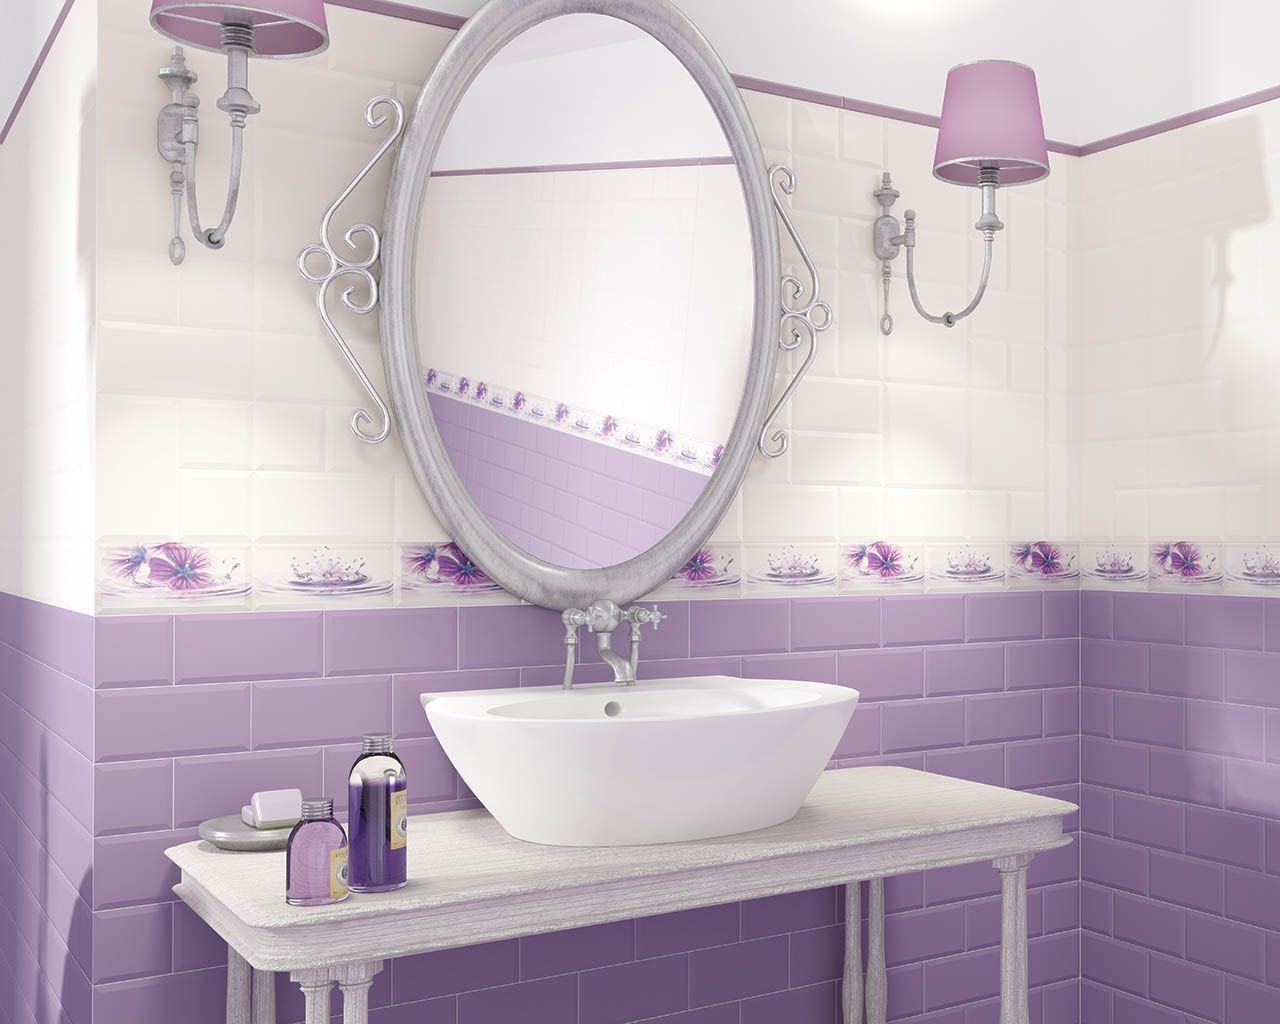 White And Lavender Bathroom Covered With Stack Bond Pattern Tiles A Floral Motif